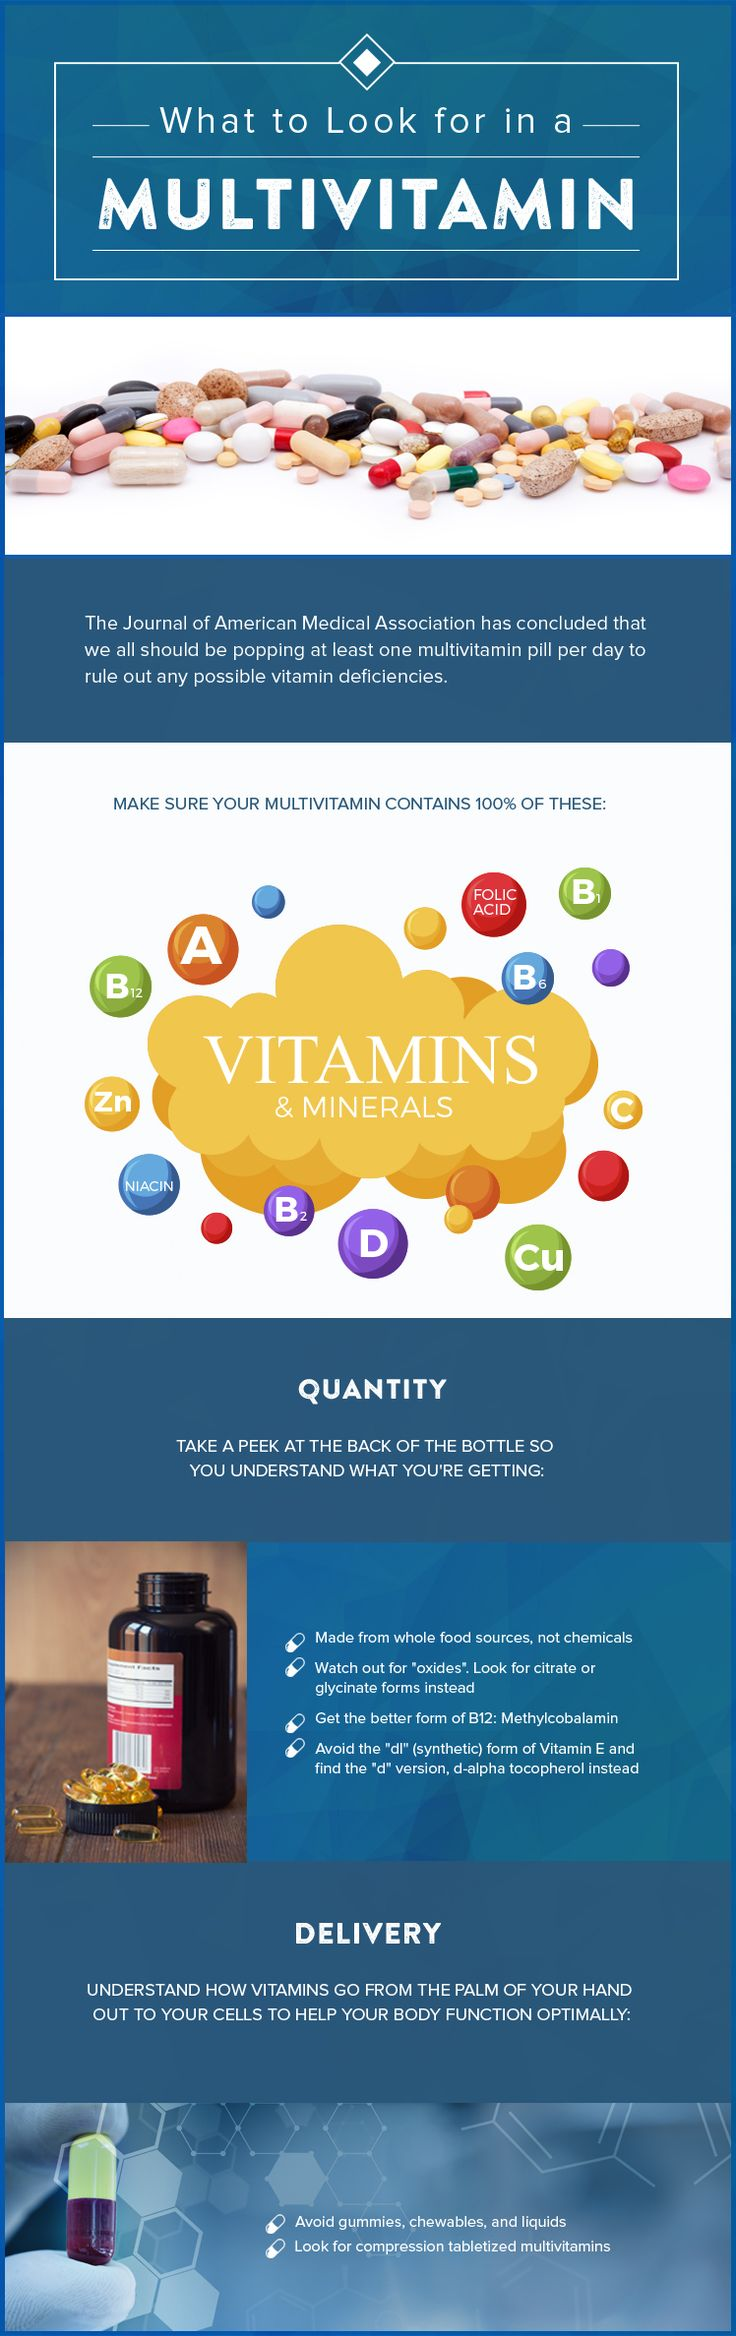 Are you taking the best multivitamin or wasting your money on a cheap imposter? Not all vitamins are effective, so find out what you should look for! #Multivitamin #Healthy #Vitamin